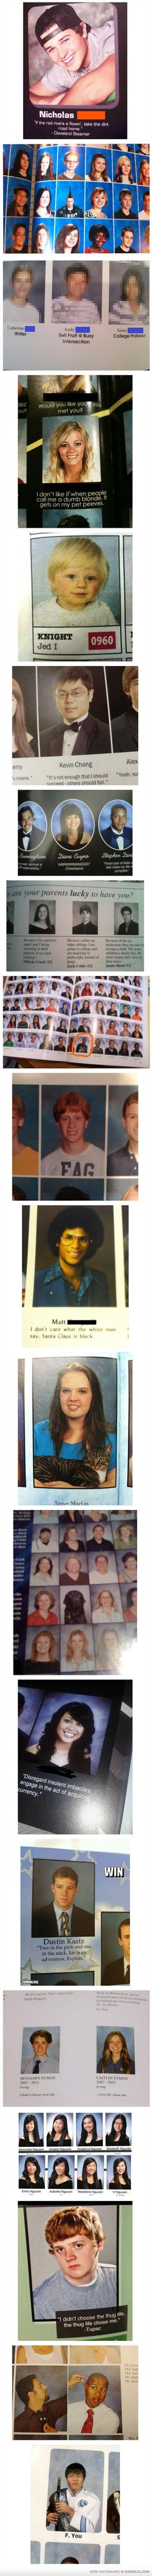 Great Moments In Yearbook Photo Awesomeness - Damn! LOL